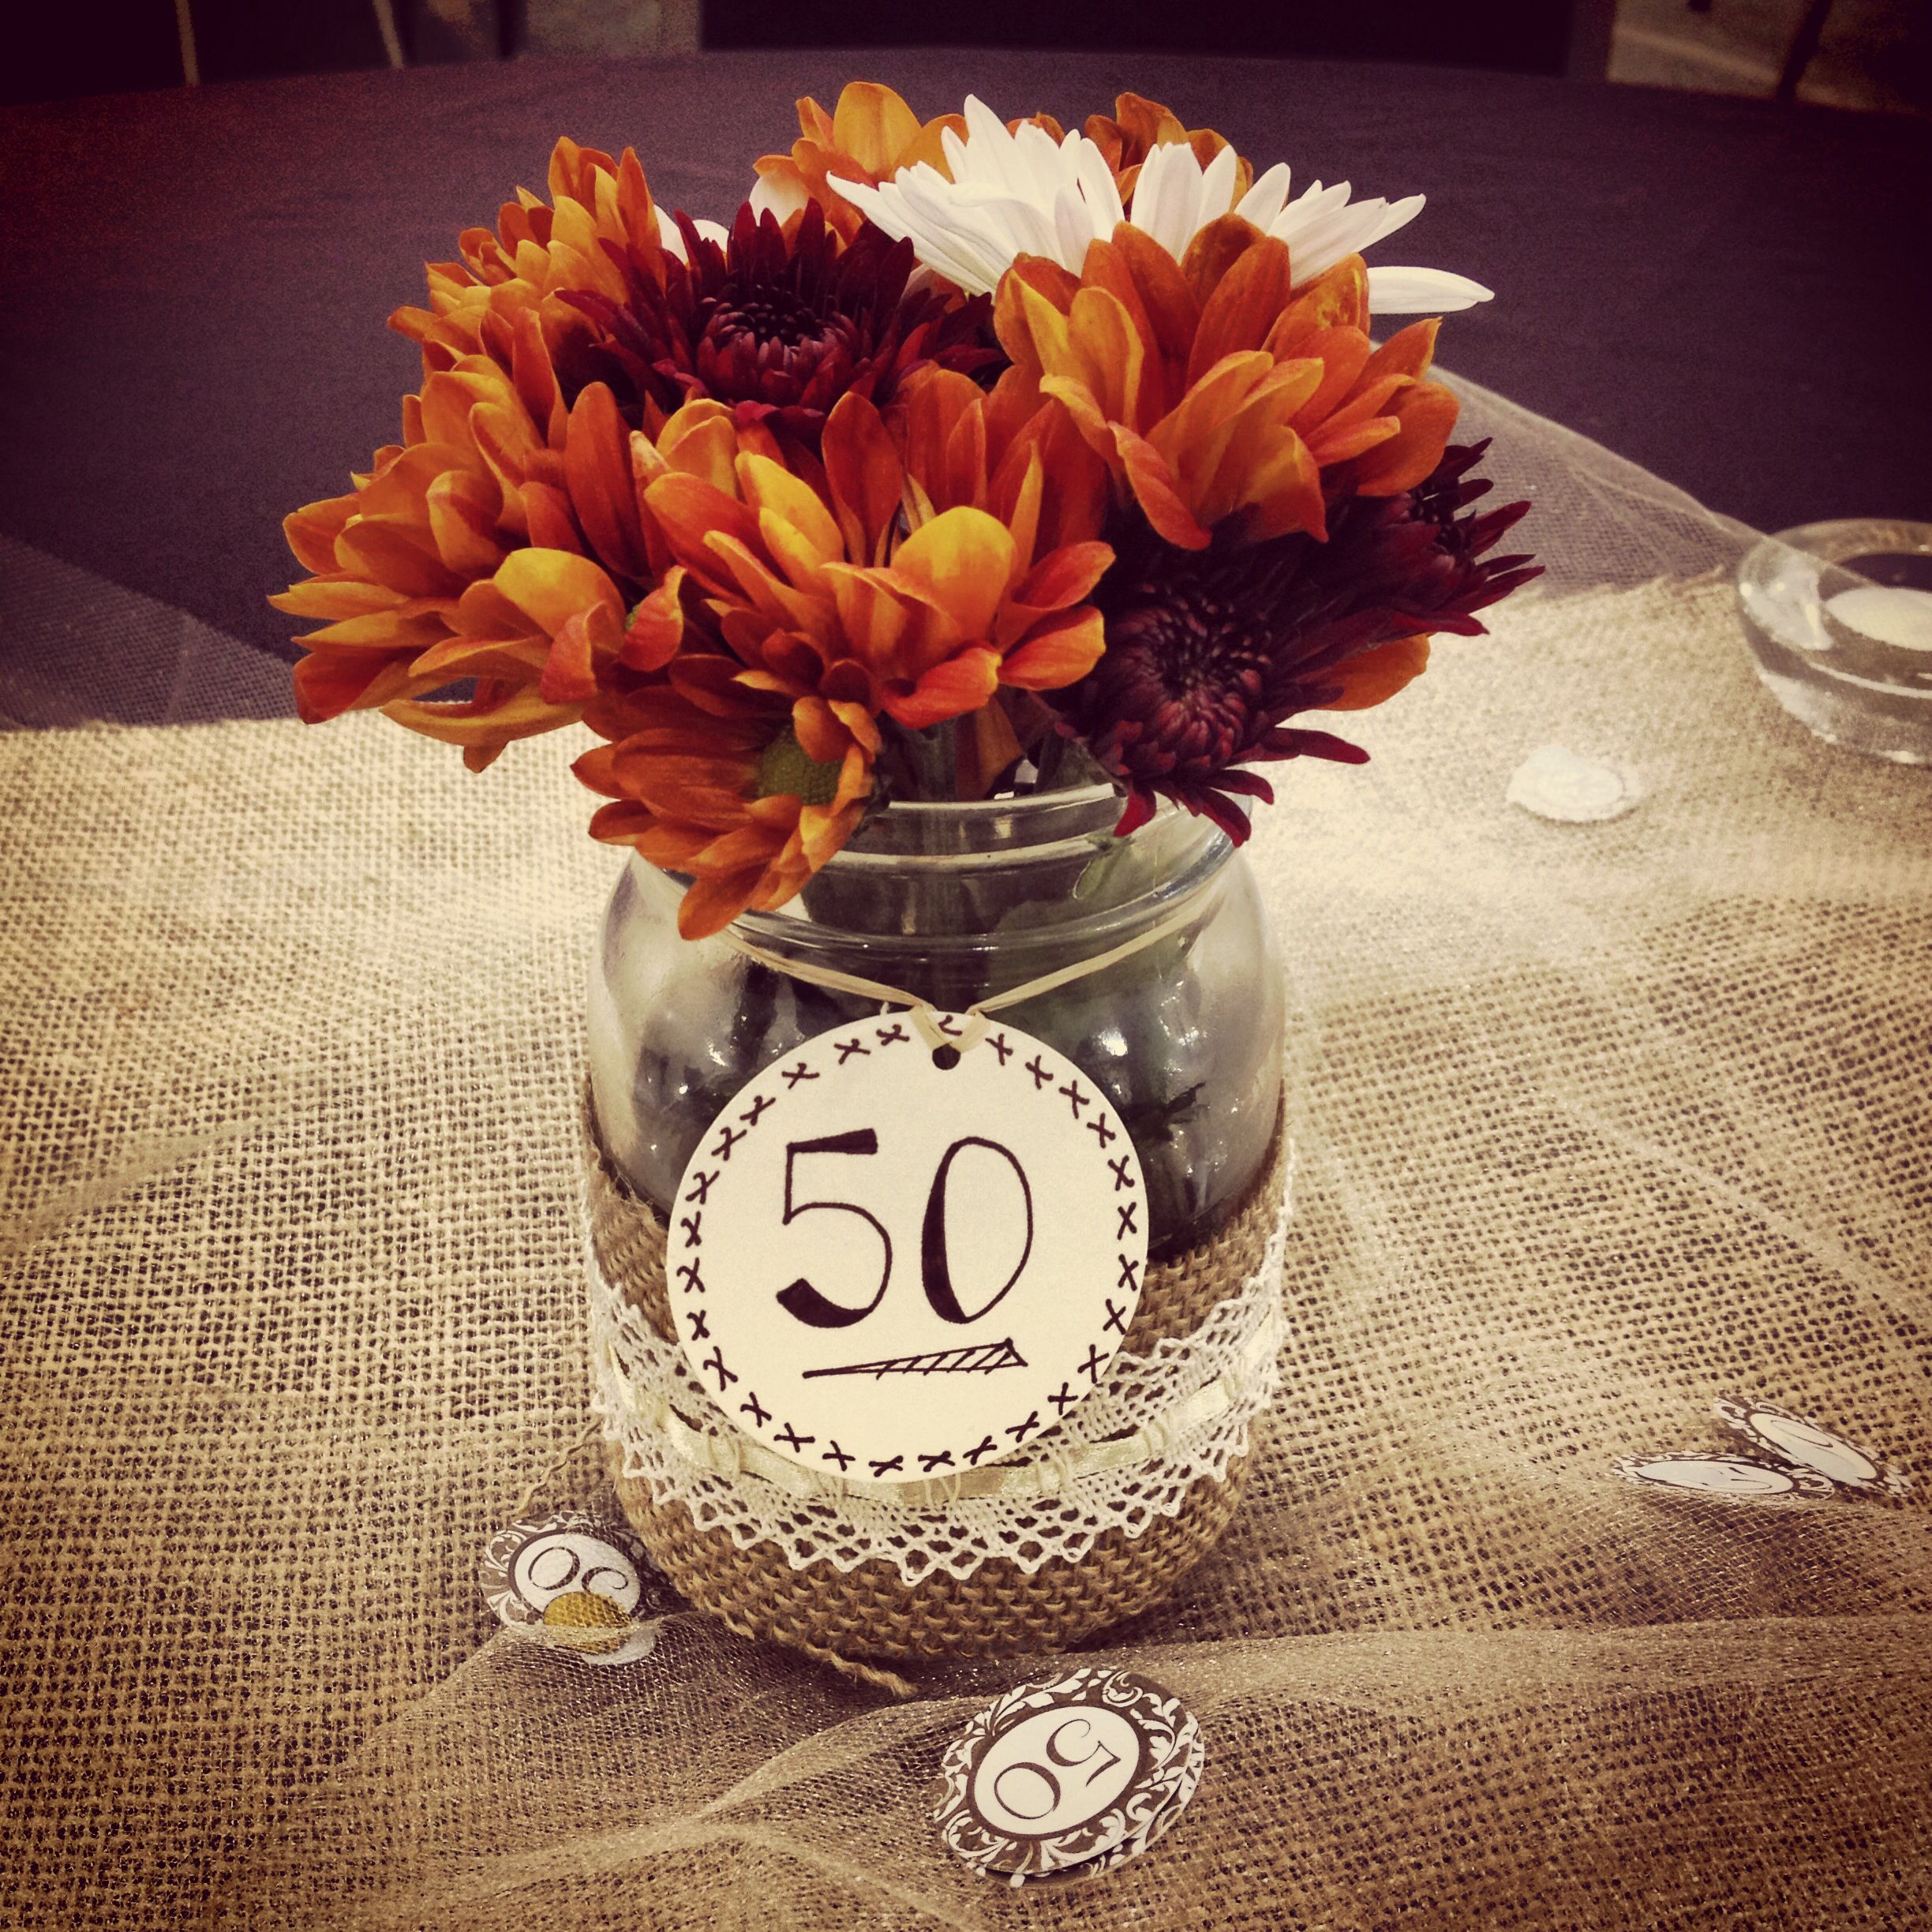 Wedding Party Ideas: 50th Wedding Anniversary Party Centerpiece